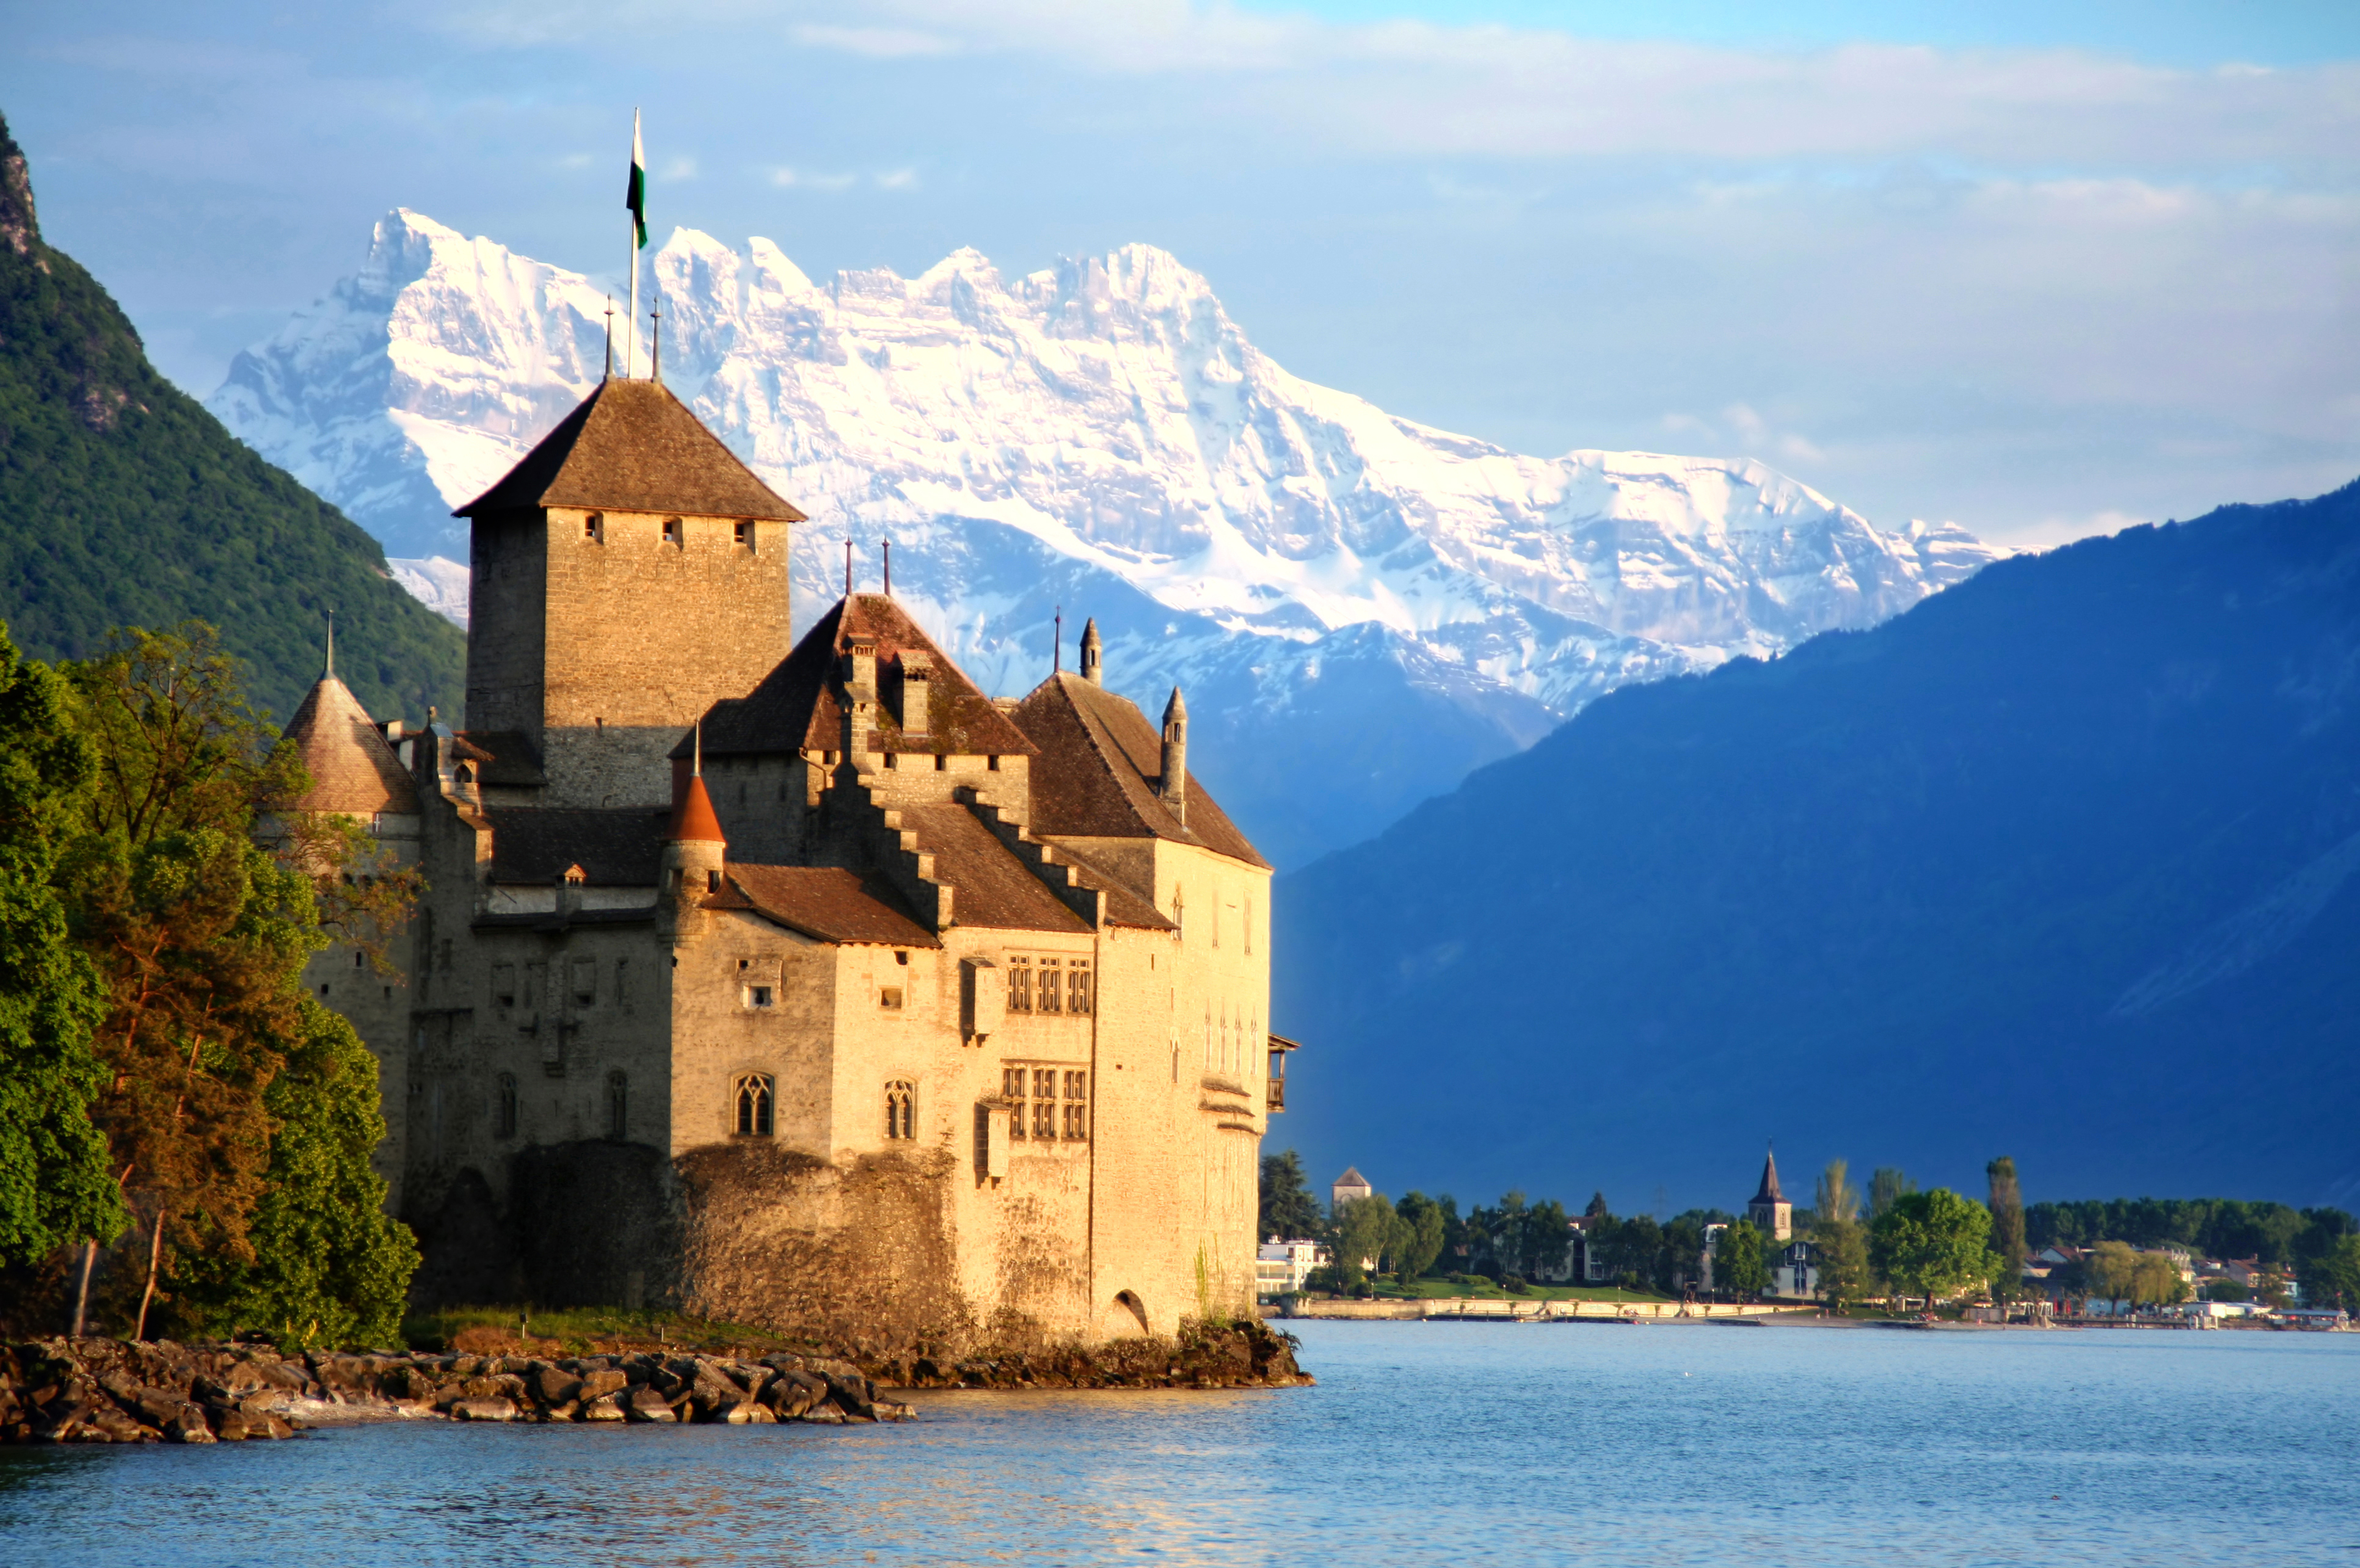 Chateau de Chillon that serves as a model Disney location